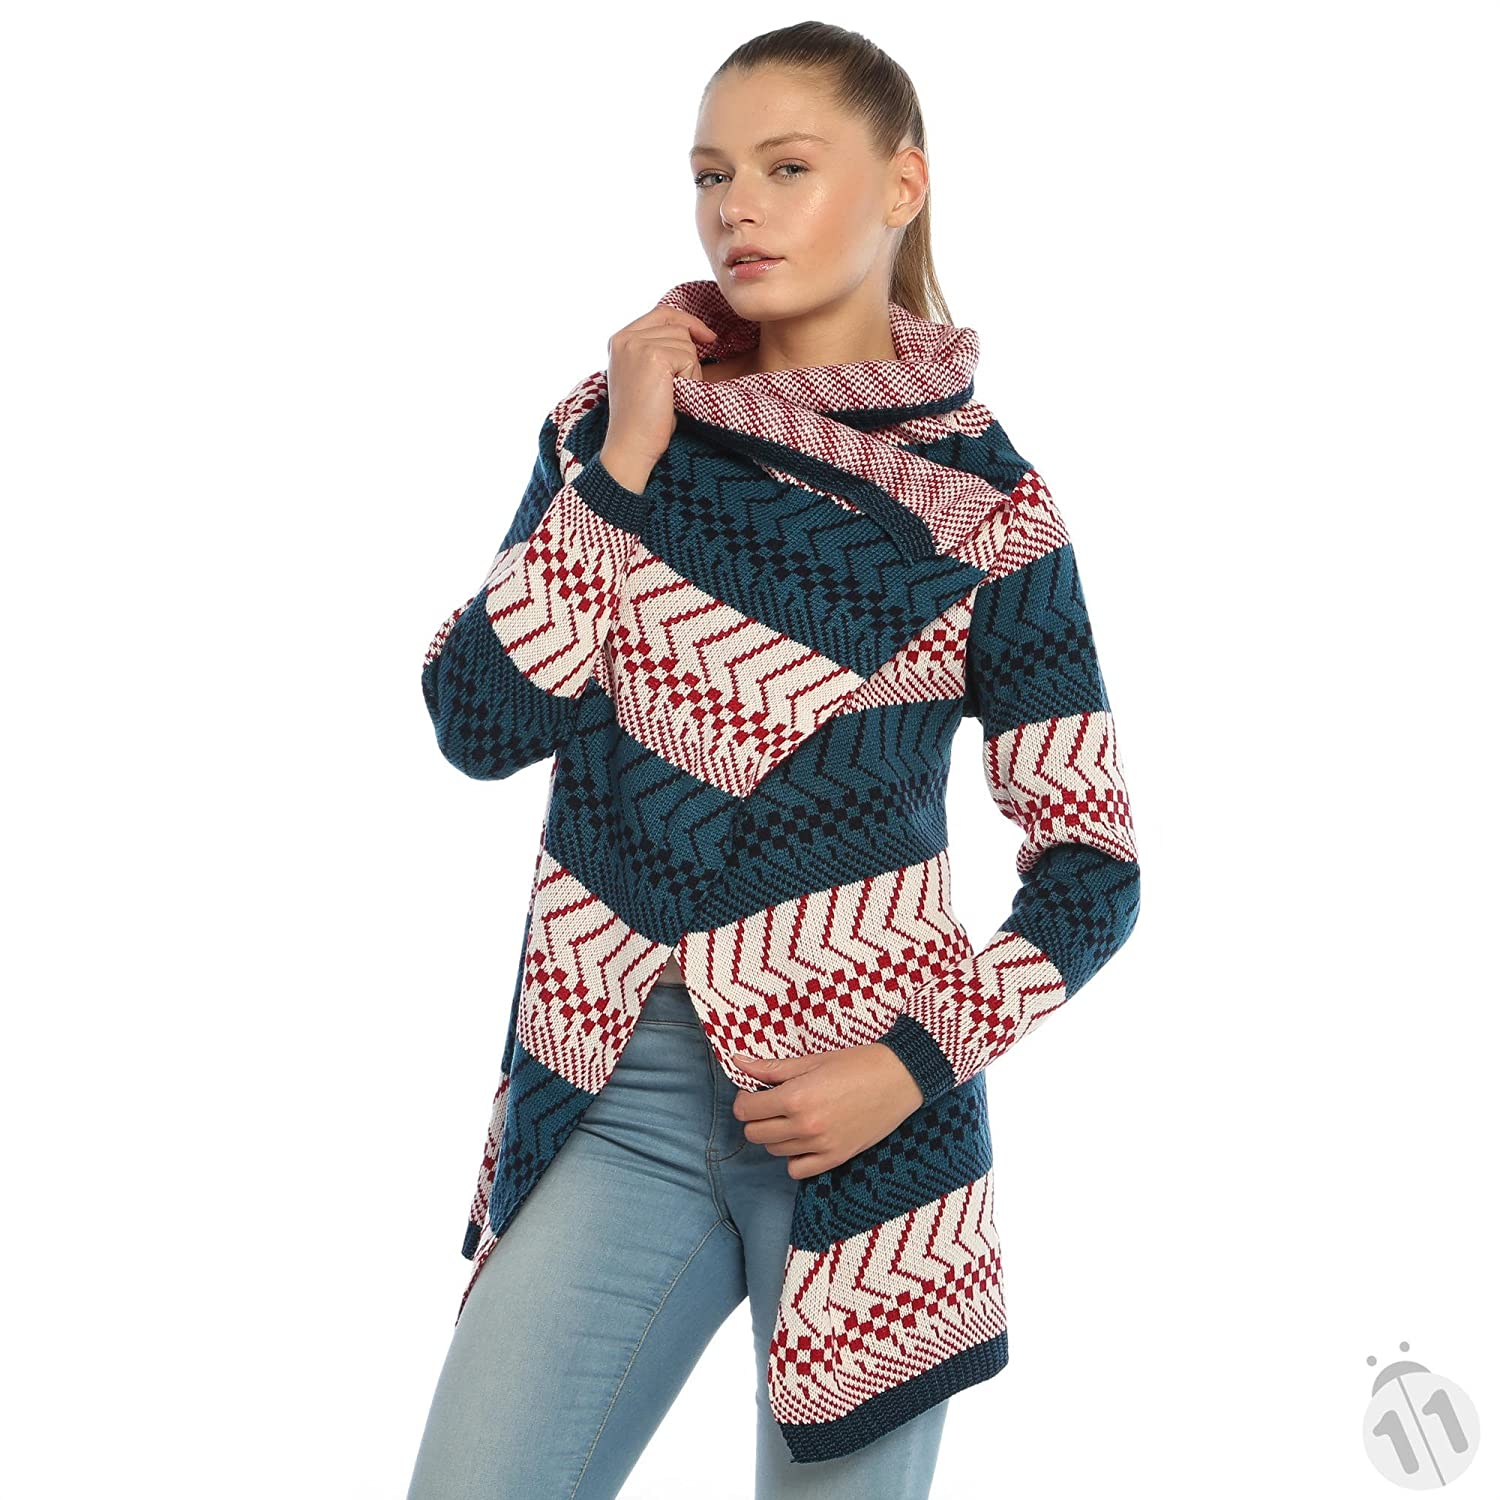 Polkadot Classic Fit Poncho in Green and red